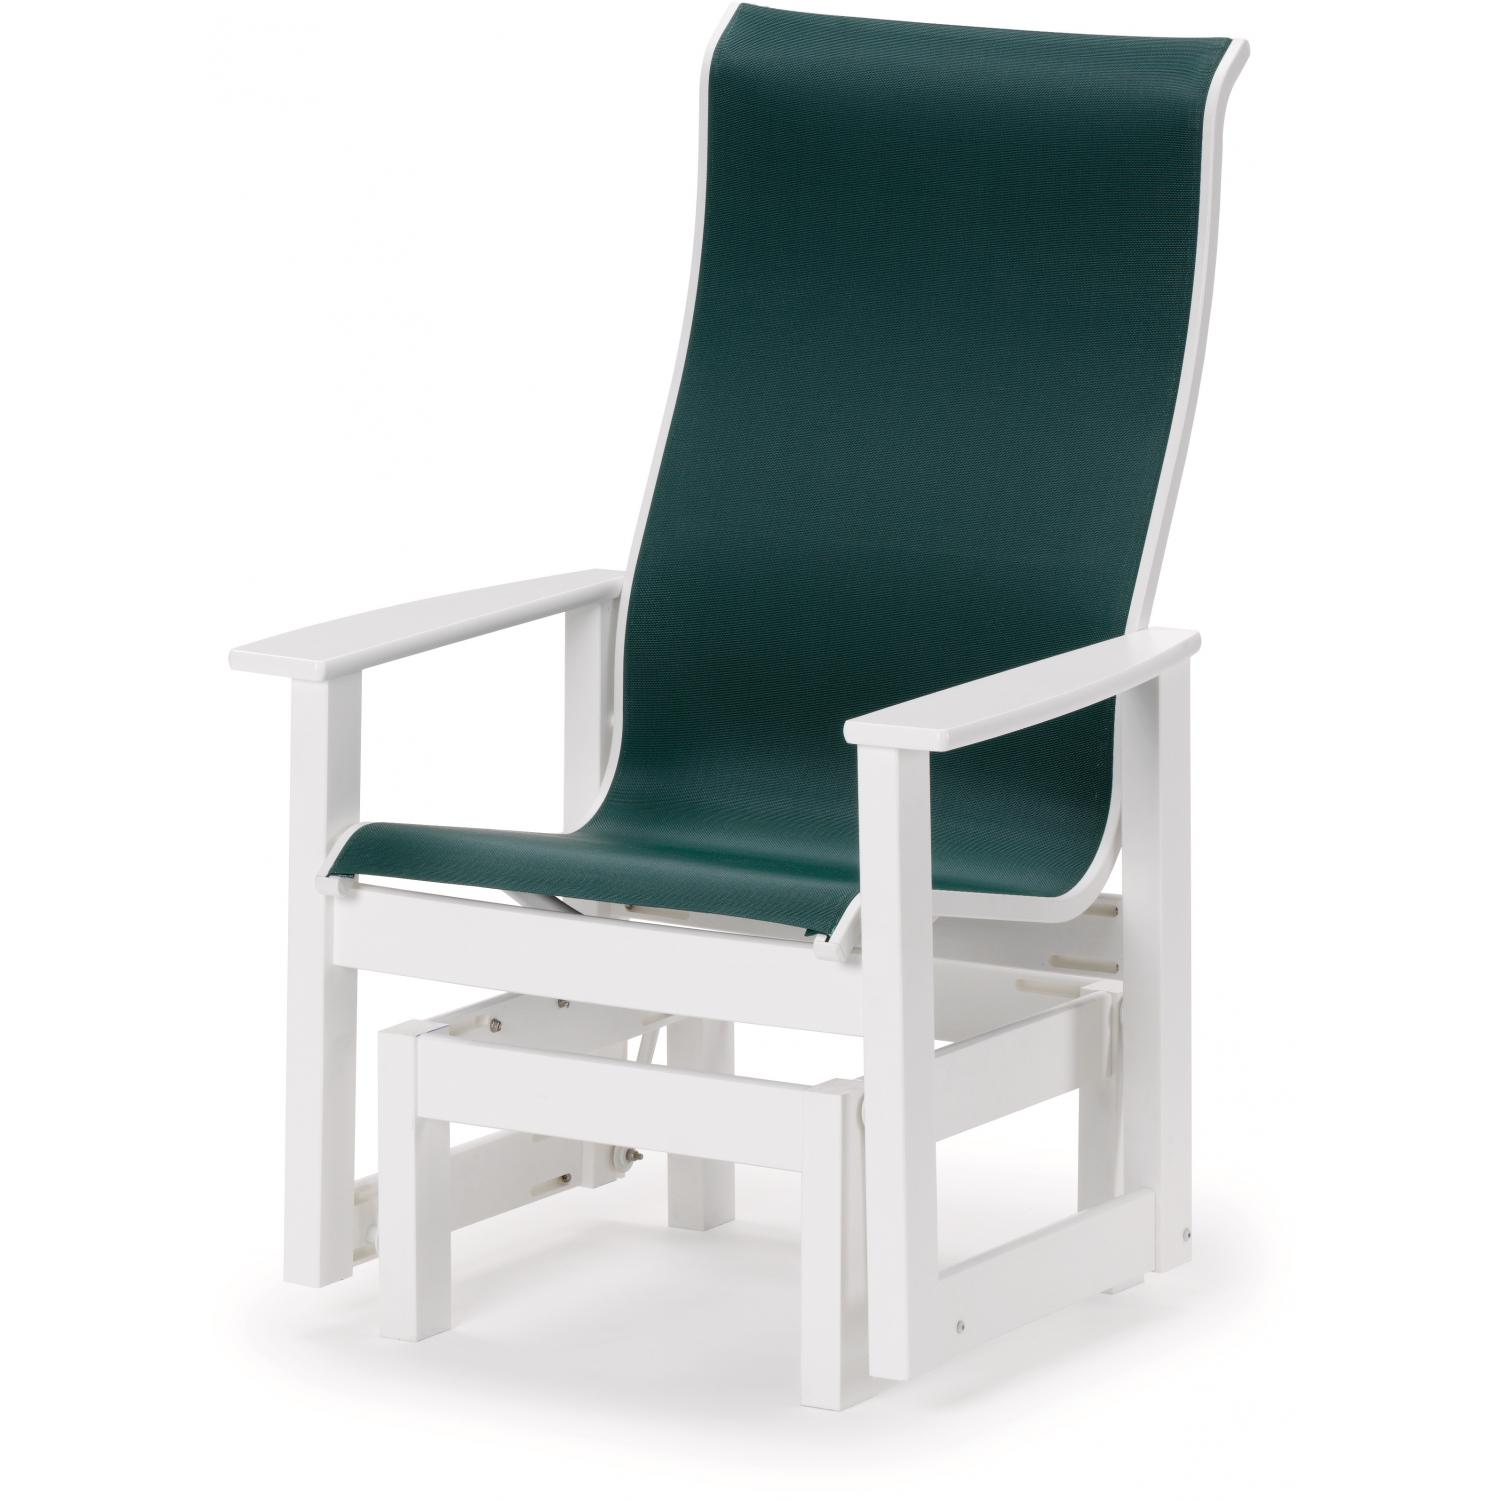 Image of: Patio Glider Chair Design